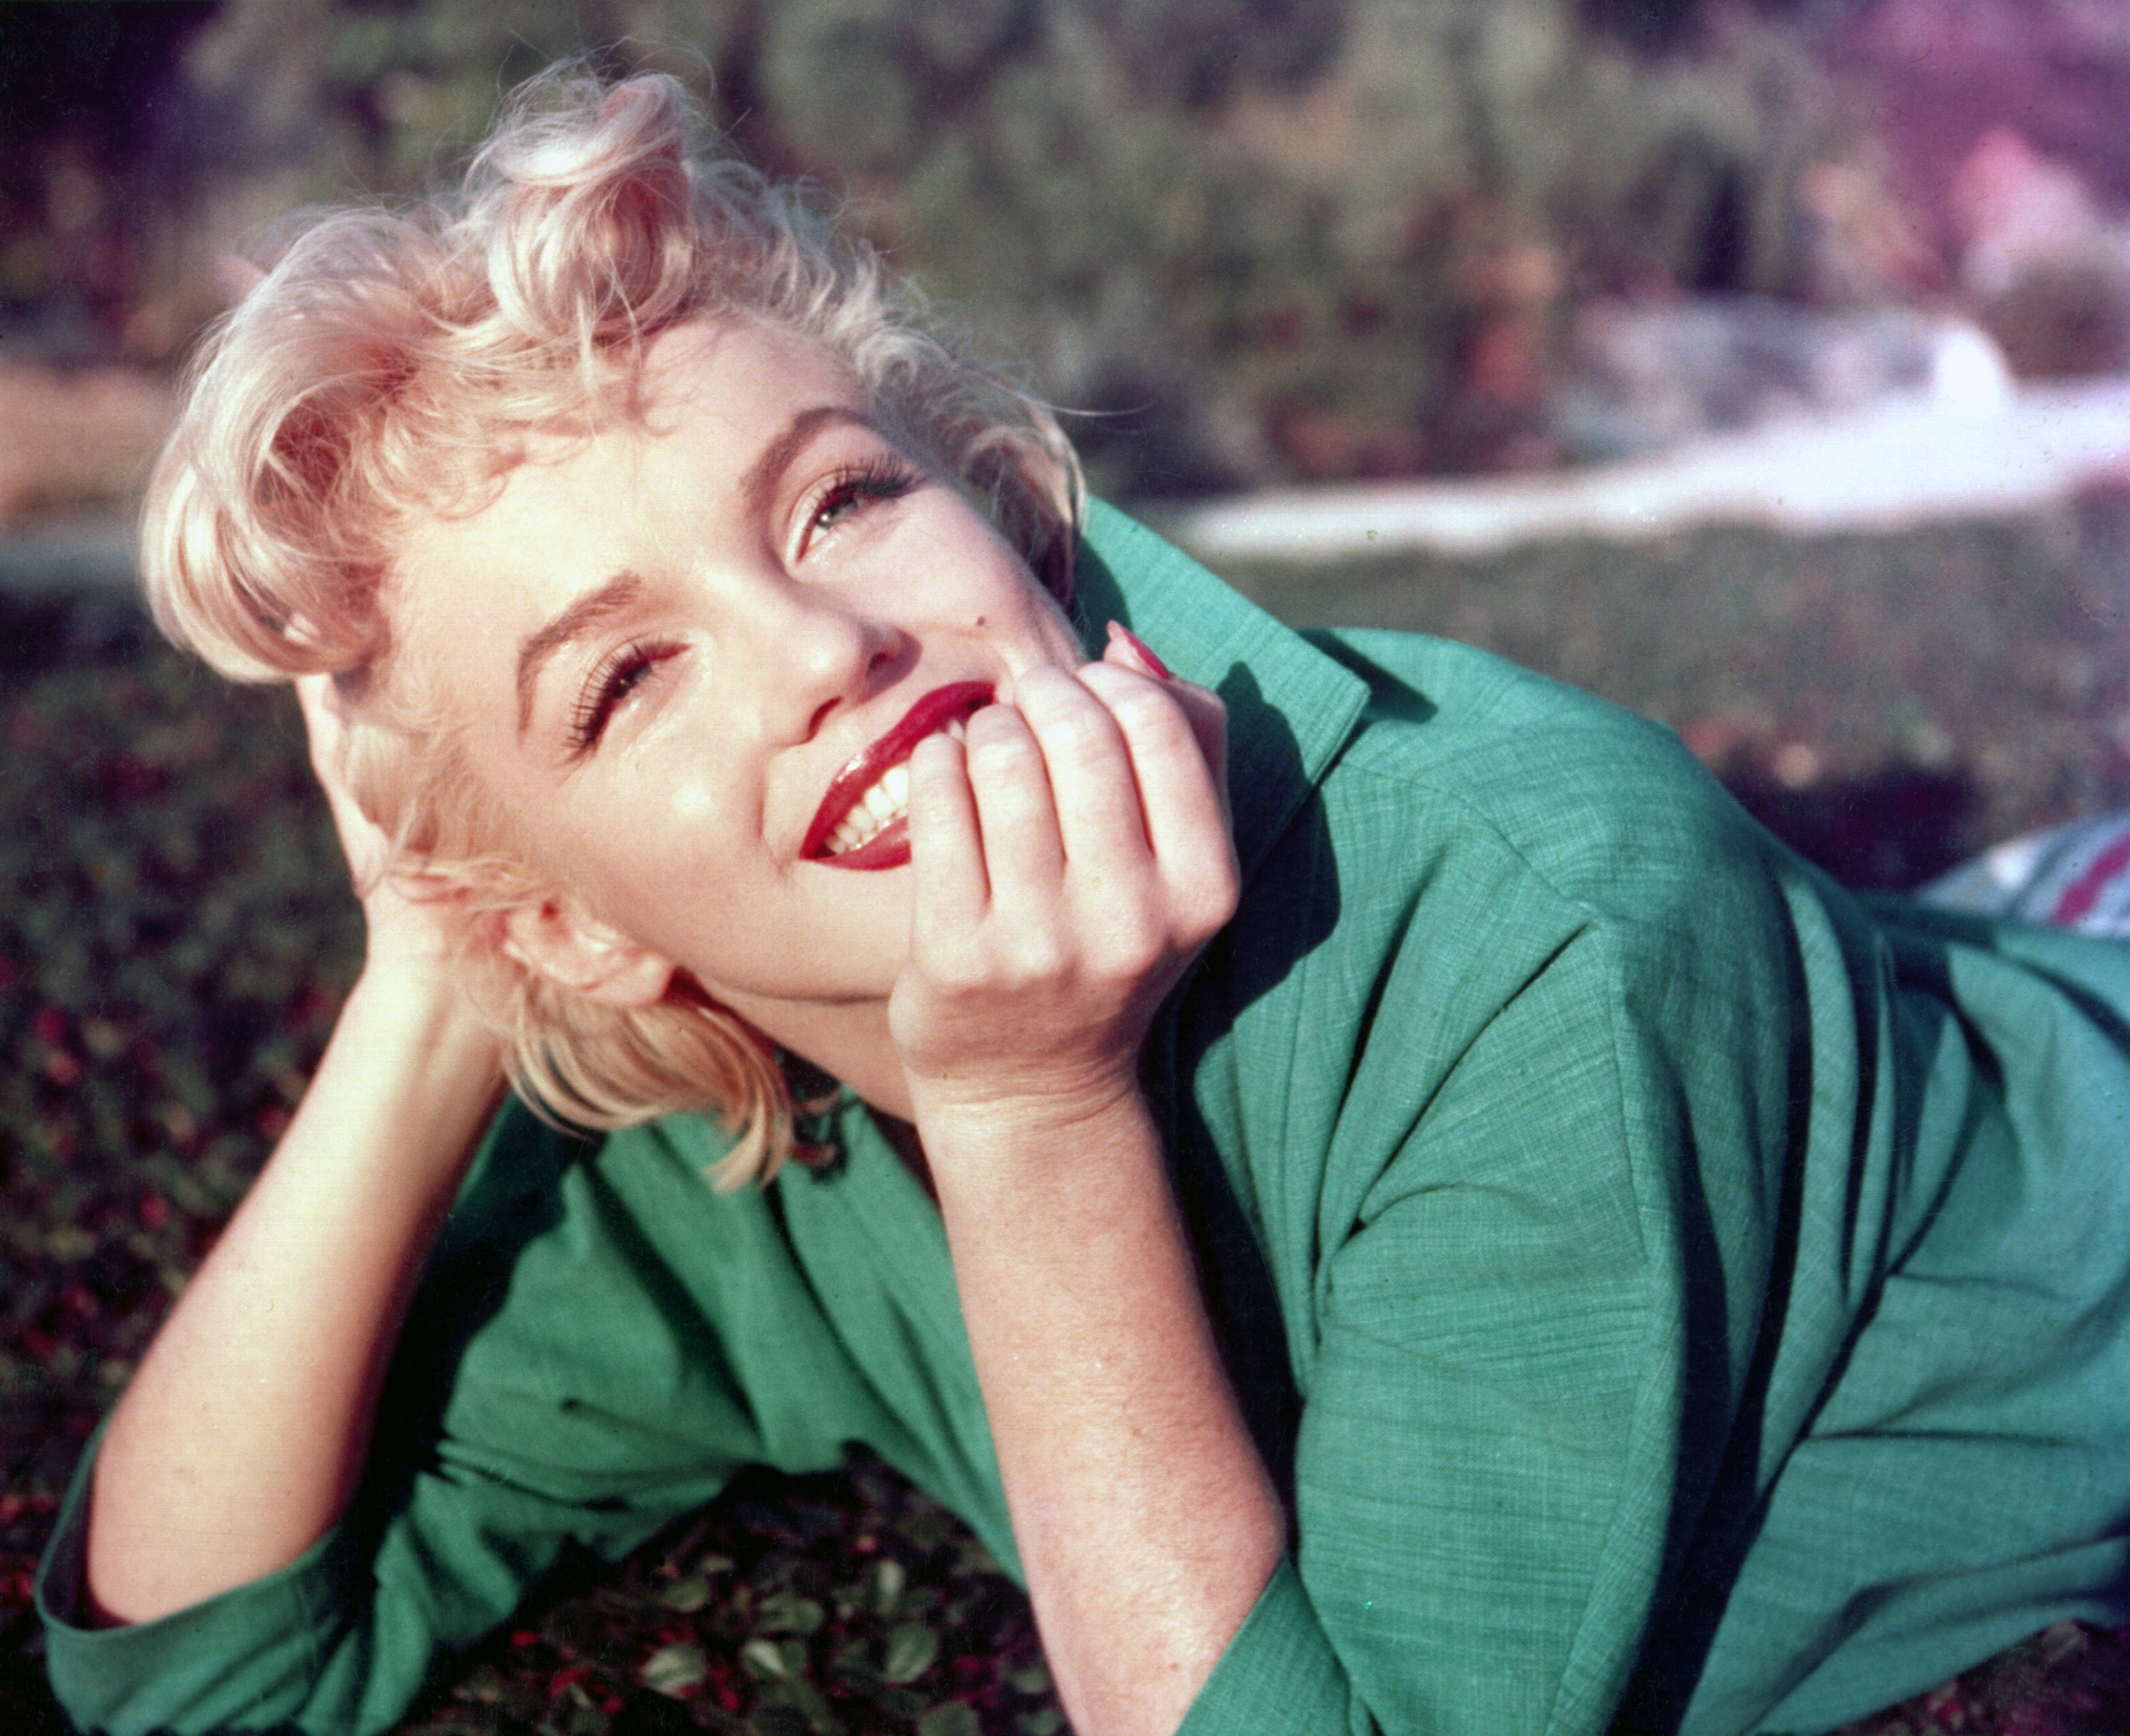 You can buy locks of Marilyn Monroe's hair, and we don't know how to feel about it